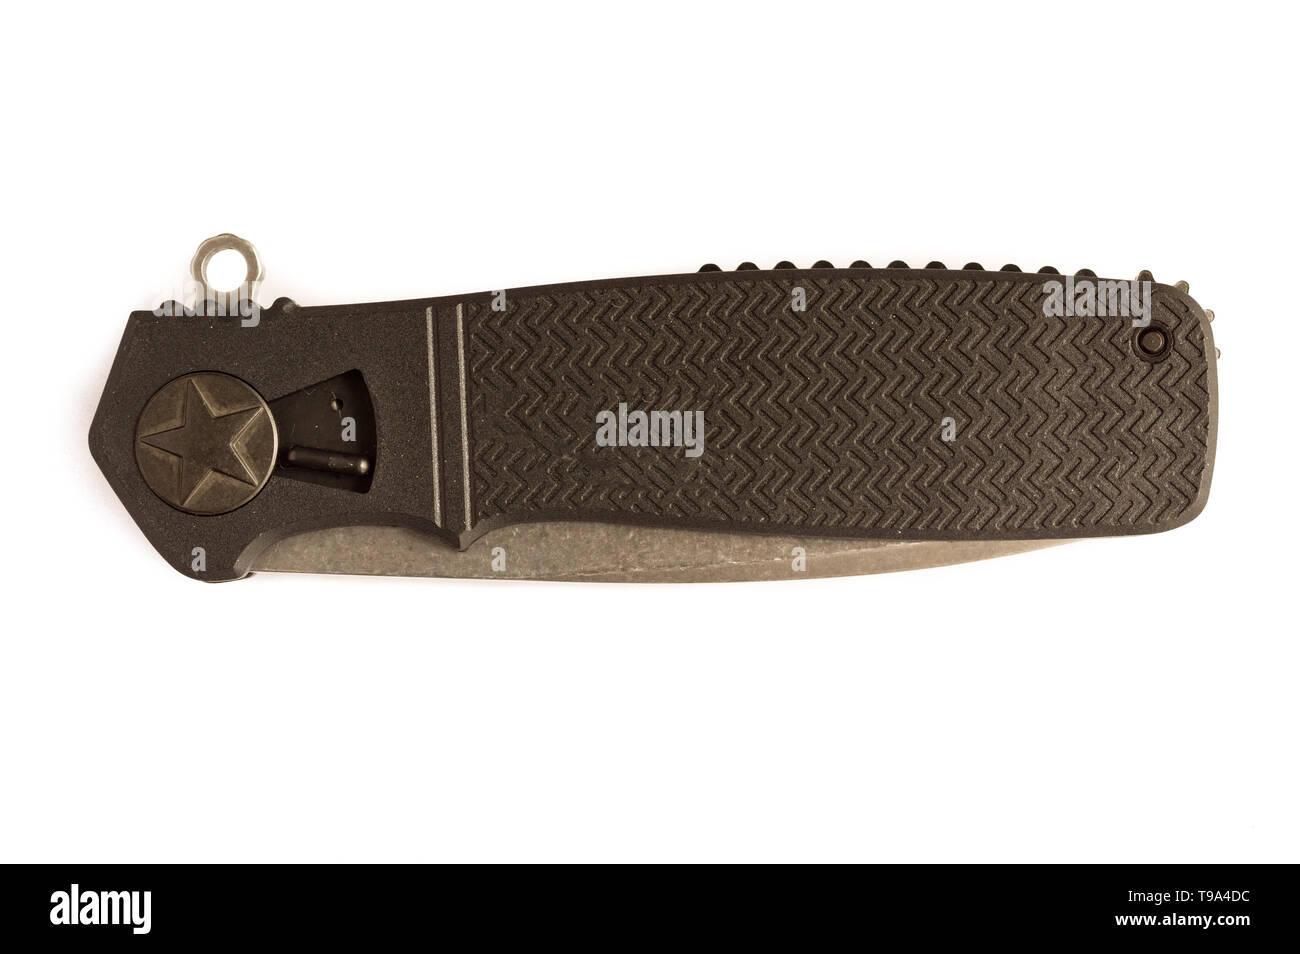 Folding knife with a black handle. Knife with a star. - Stock Image